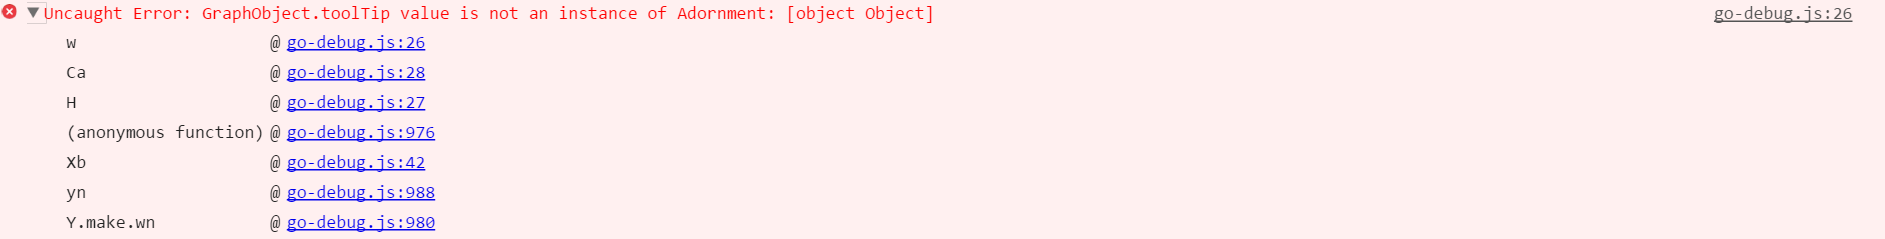 Node Tooltip Issue - GraphObject toolTip value is not an